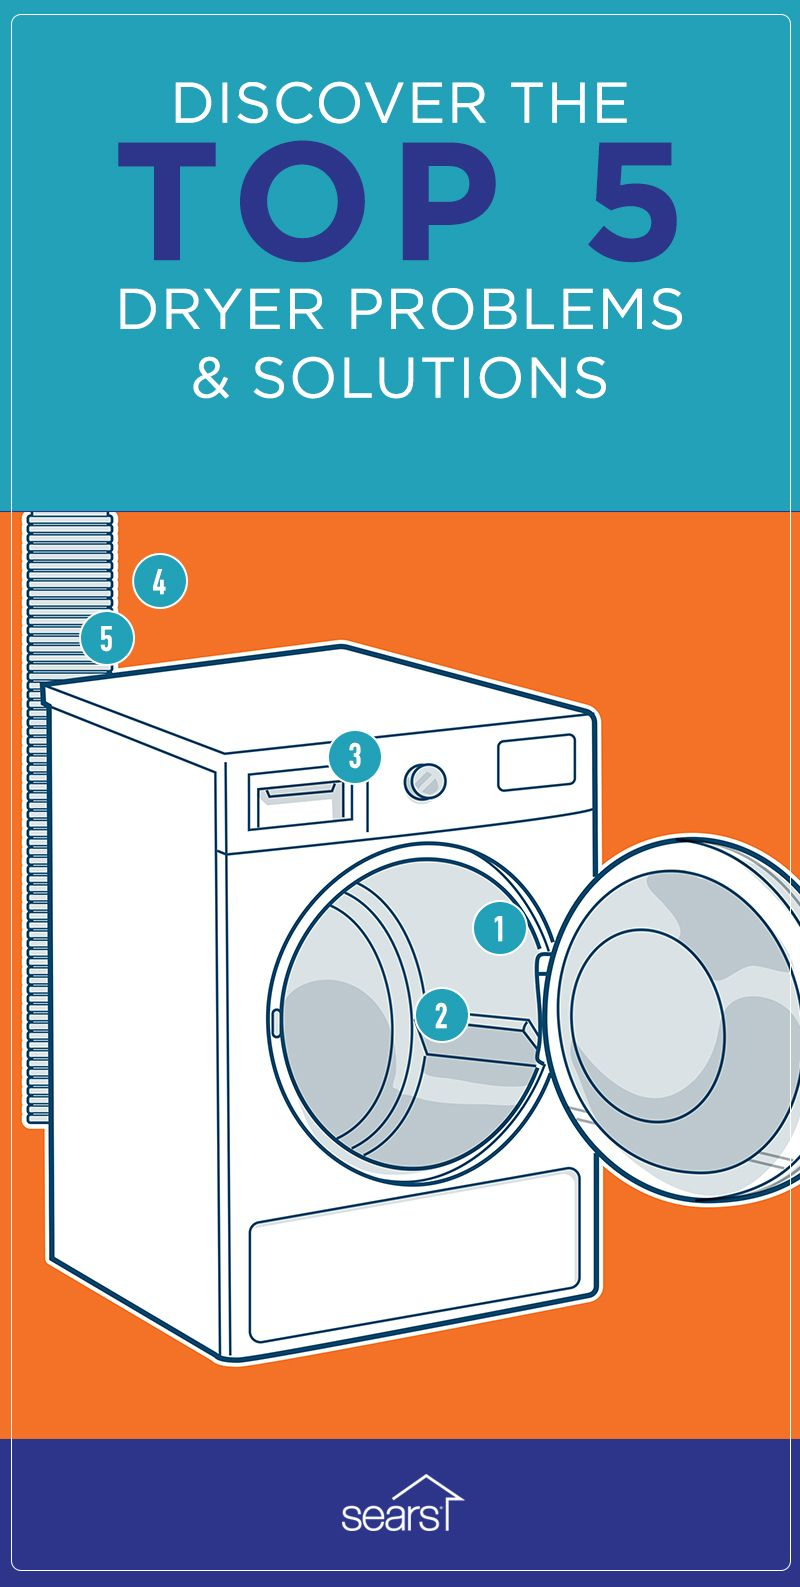 Is Your Dryer Shutting Off Early Does It Make Strange Noises Our Appliances Are Supposed To Work So When Clothes Dryer Repair Dryer Maintenance Dryer Repair